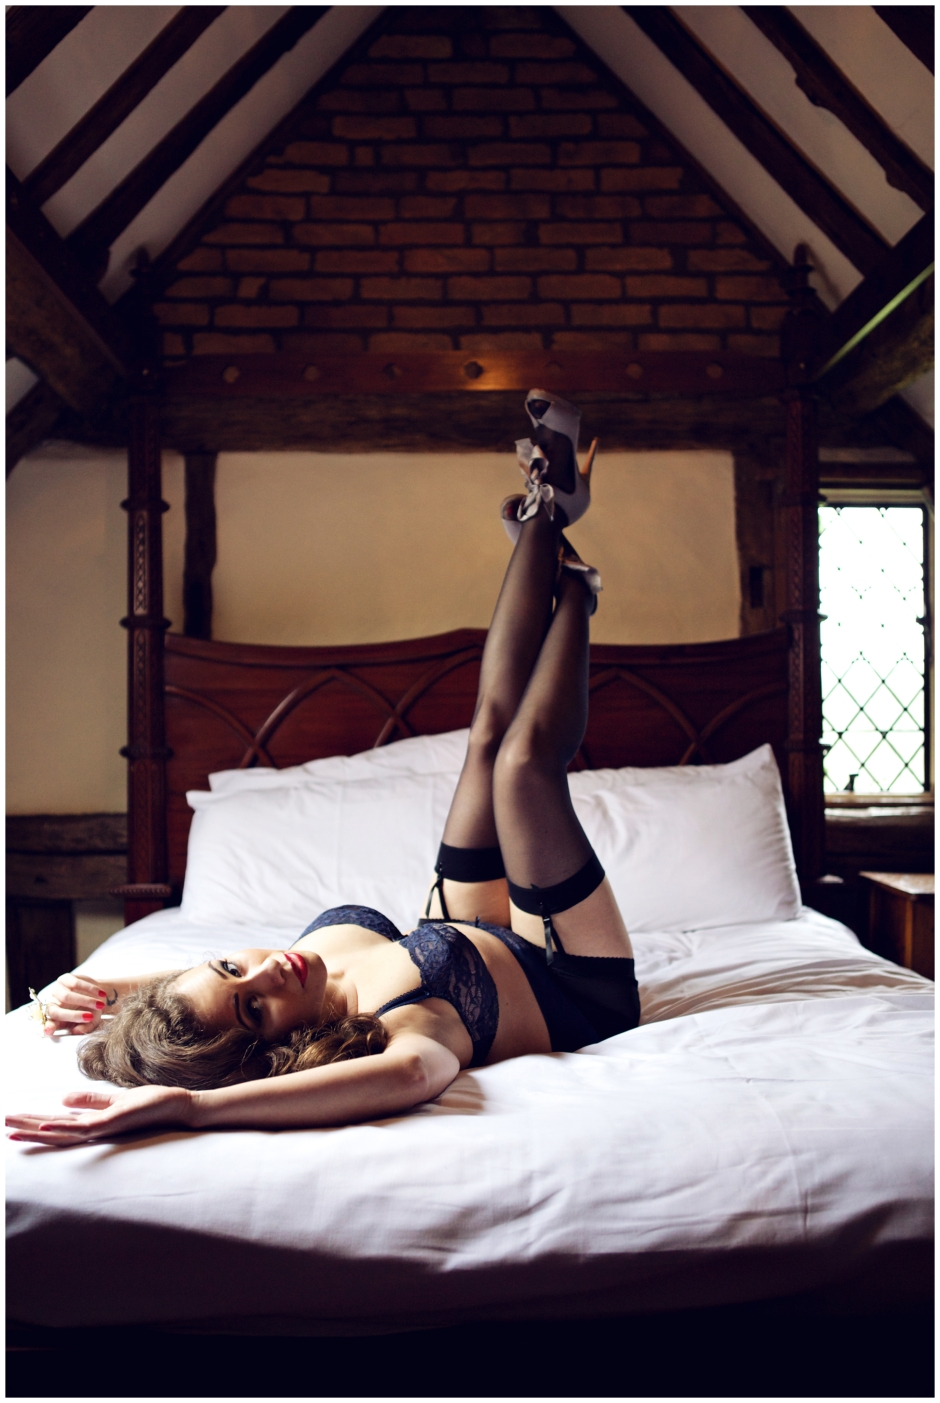 002 photography farm 2014 boudoir by Devon based photographer Elizabeth Armitage